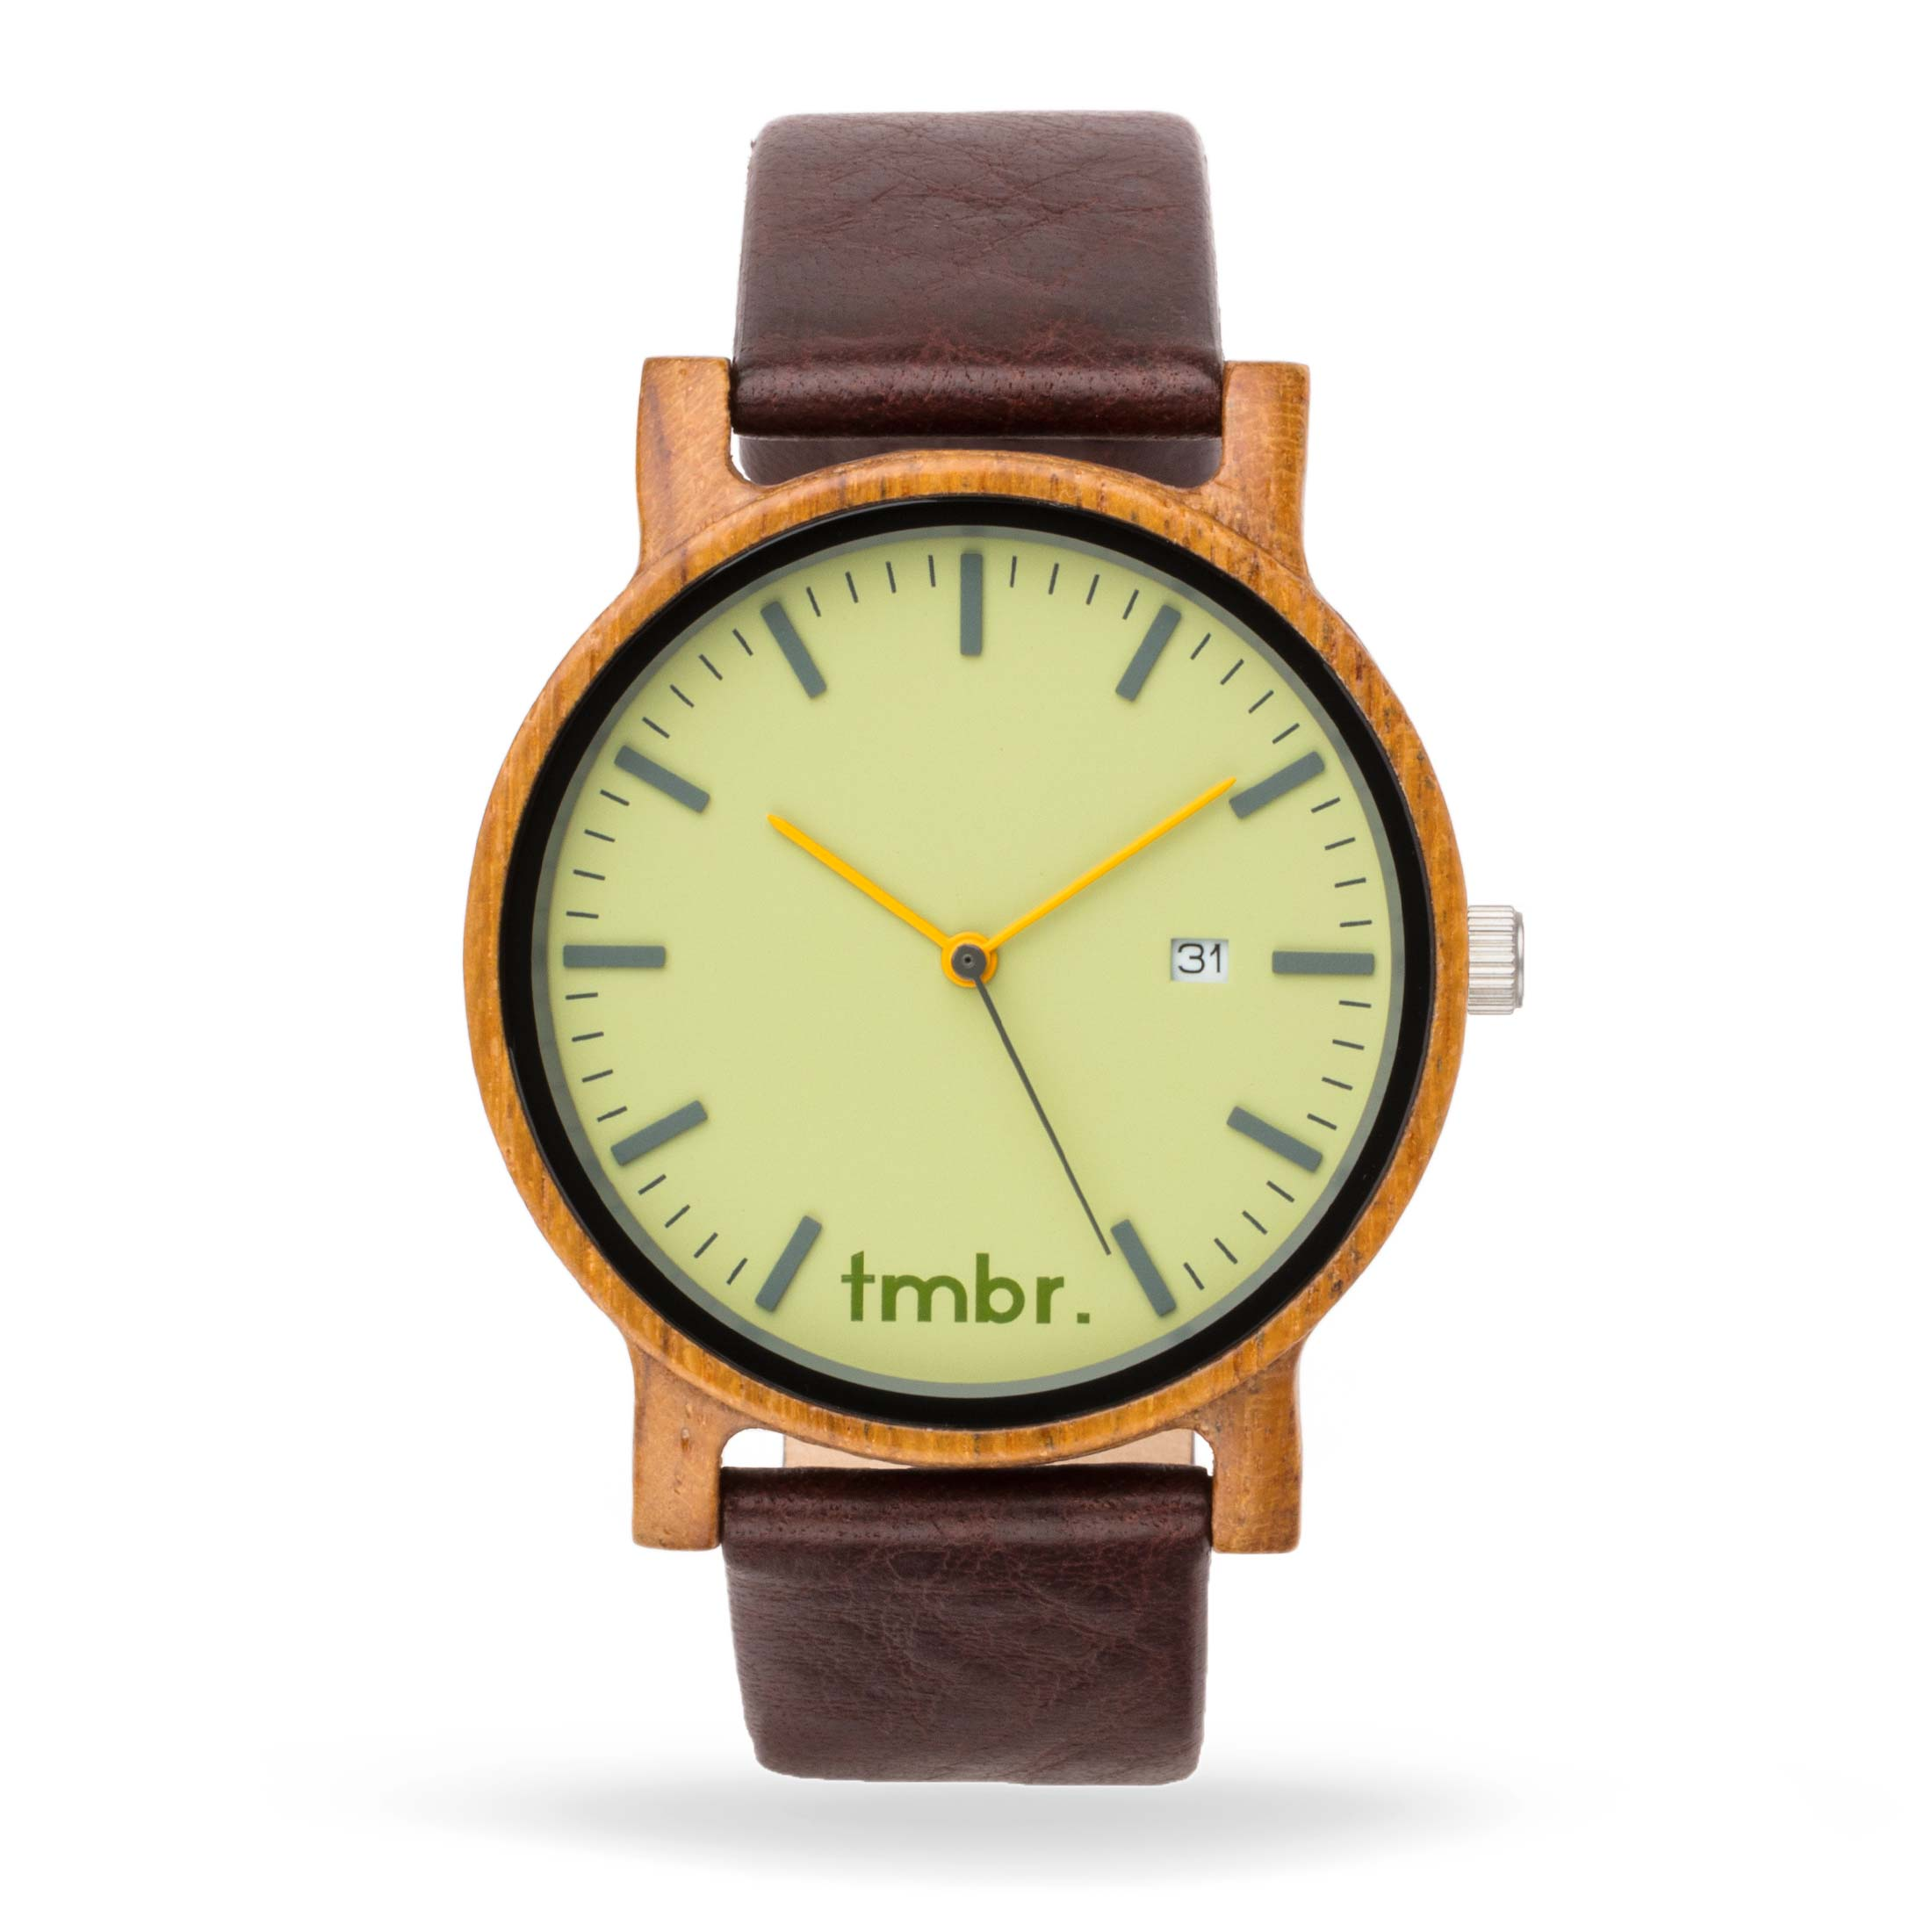 Tmbr Journeyman Wooden Watch - Grove Green